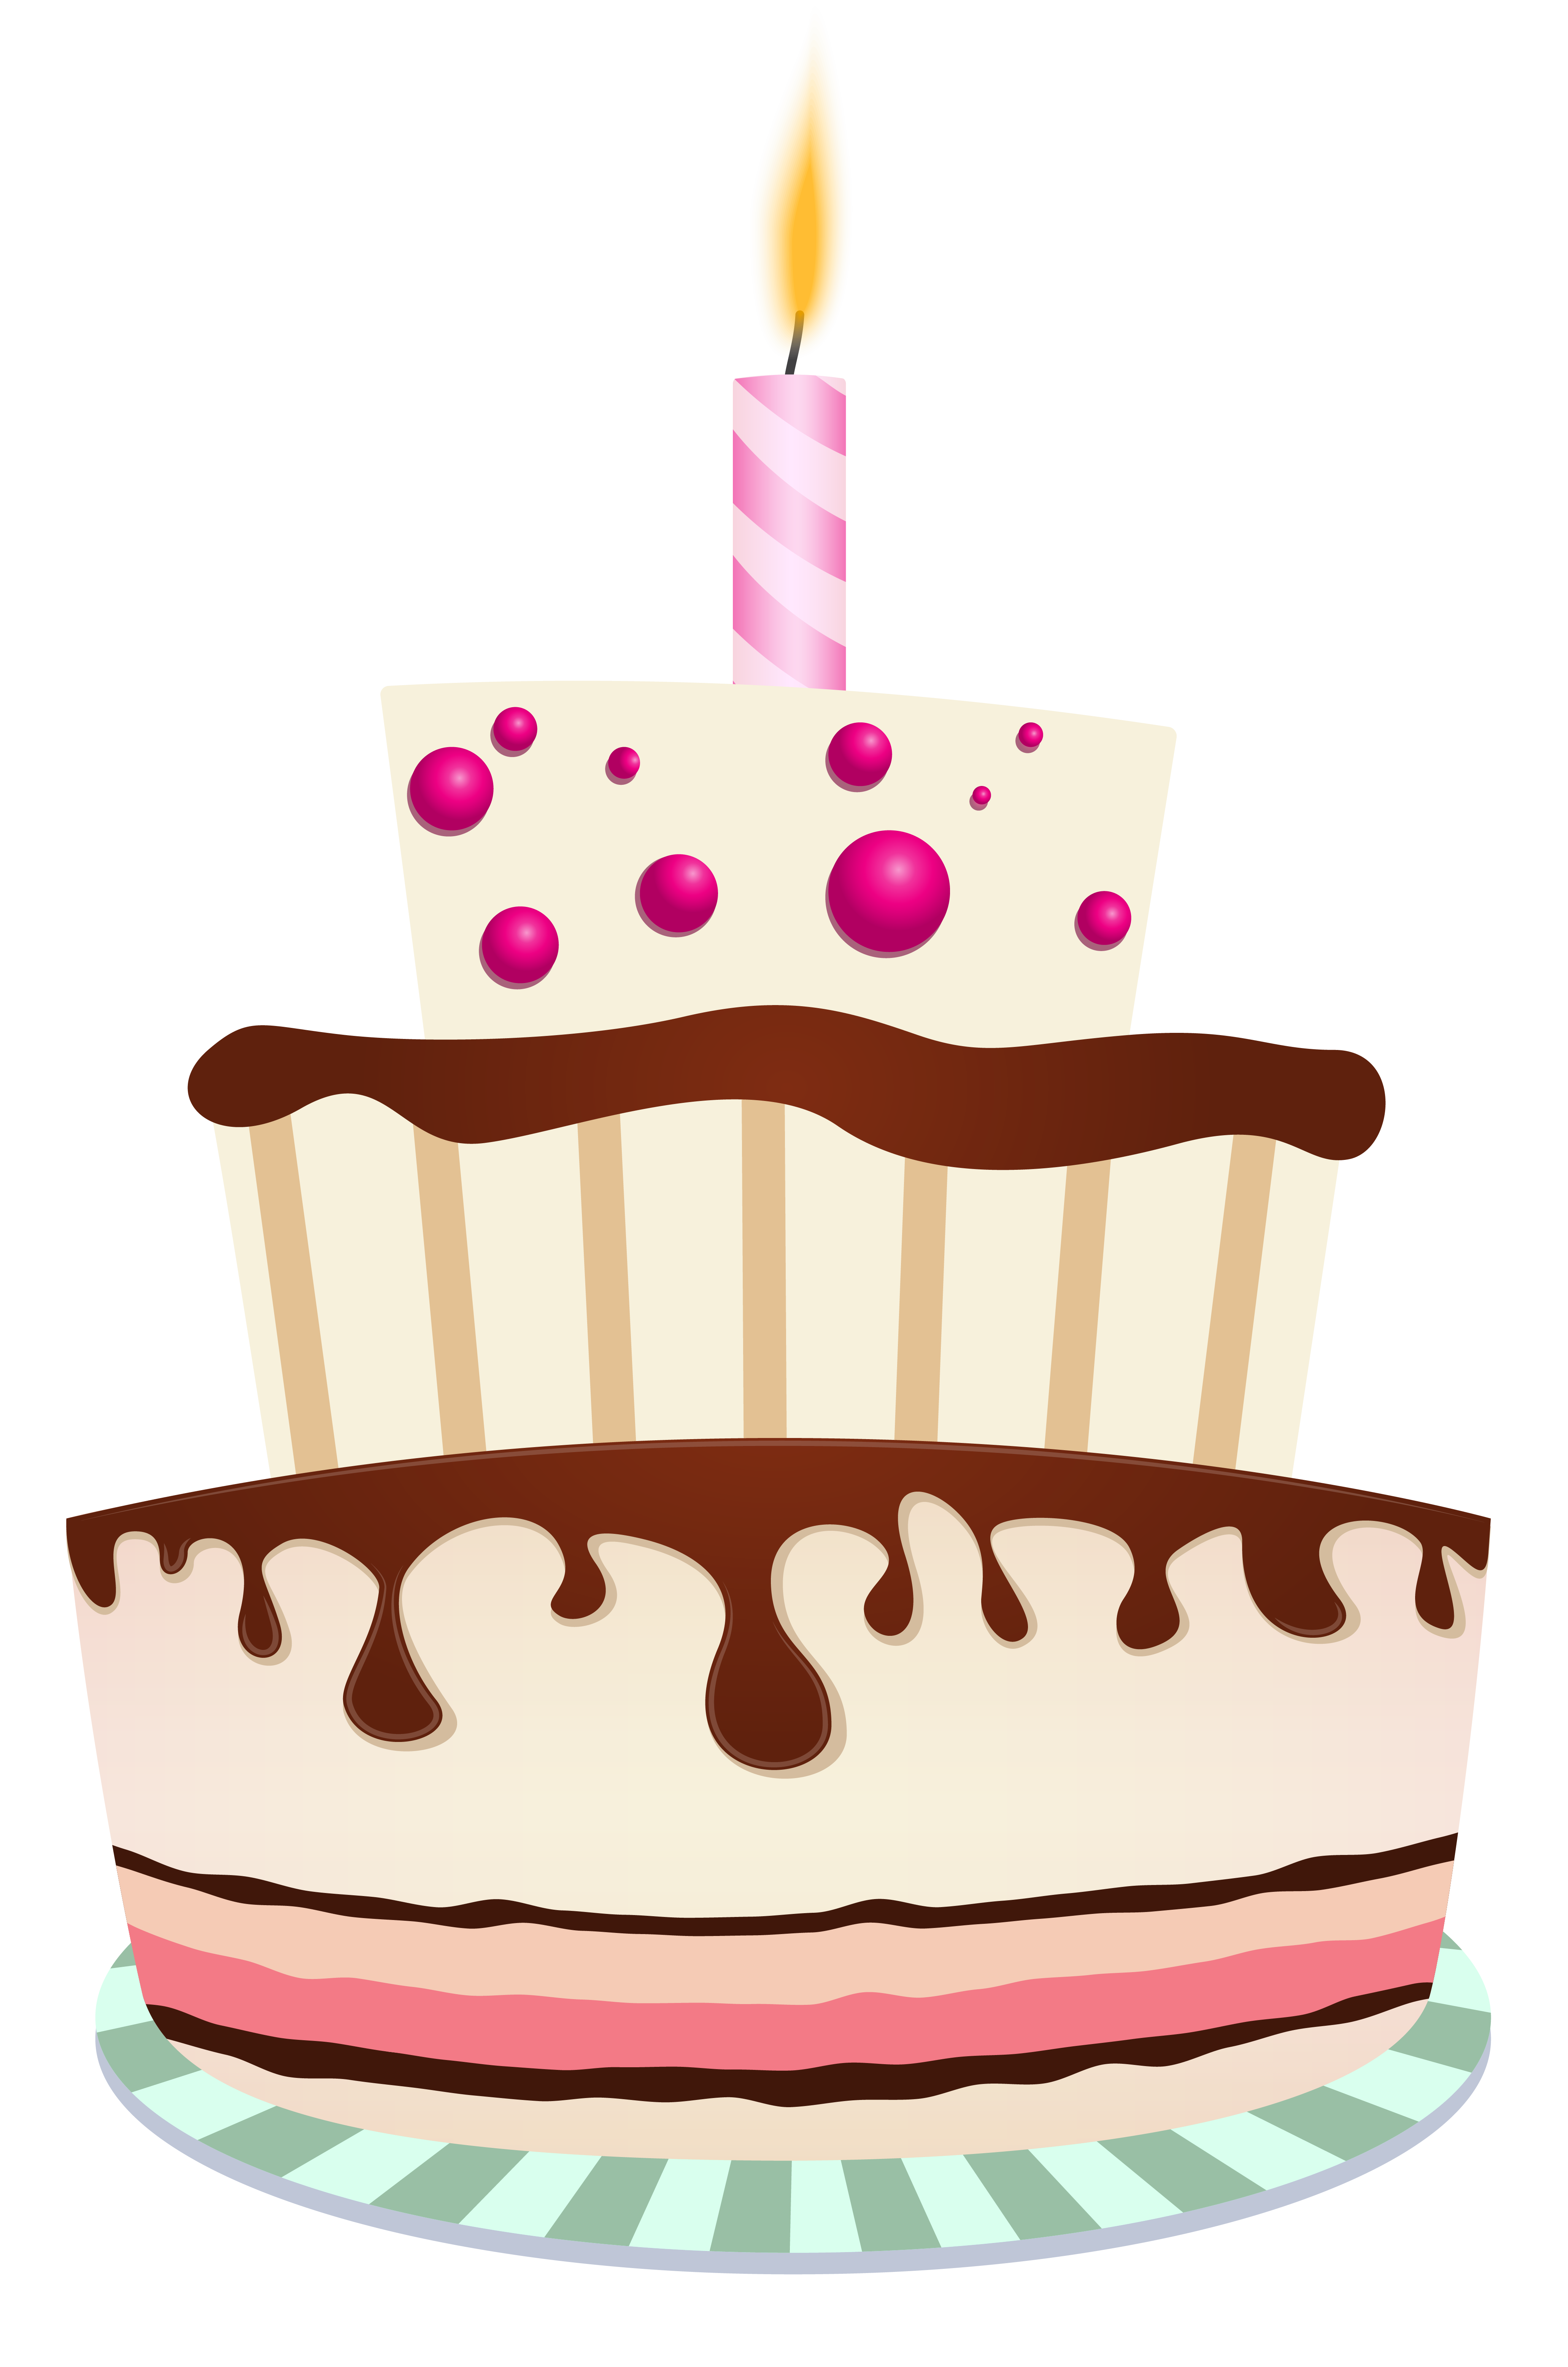 One Birthday Cake Candle Chocolate With PNG Image